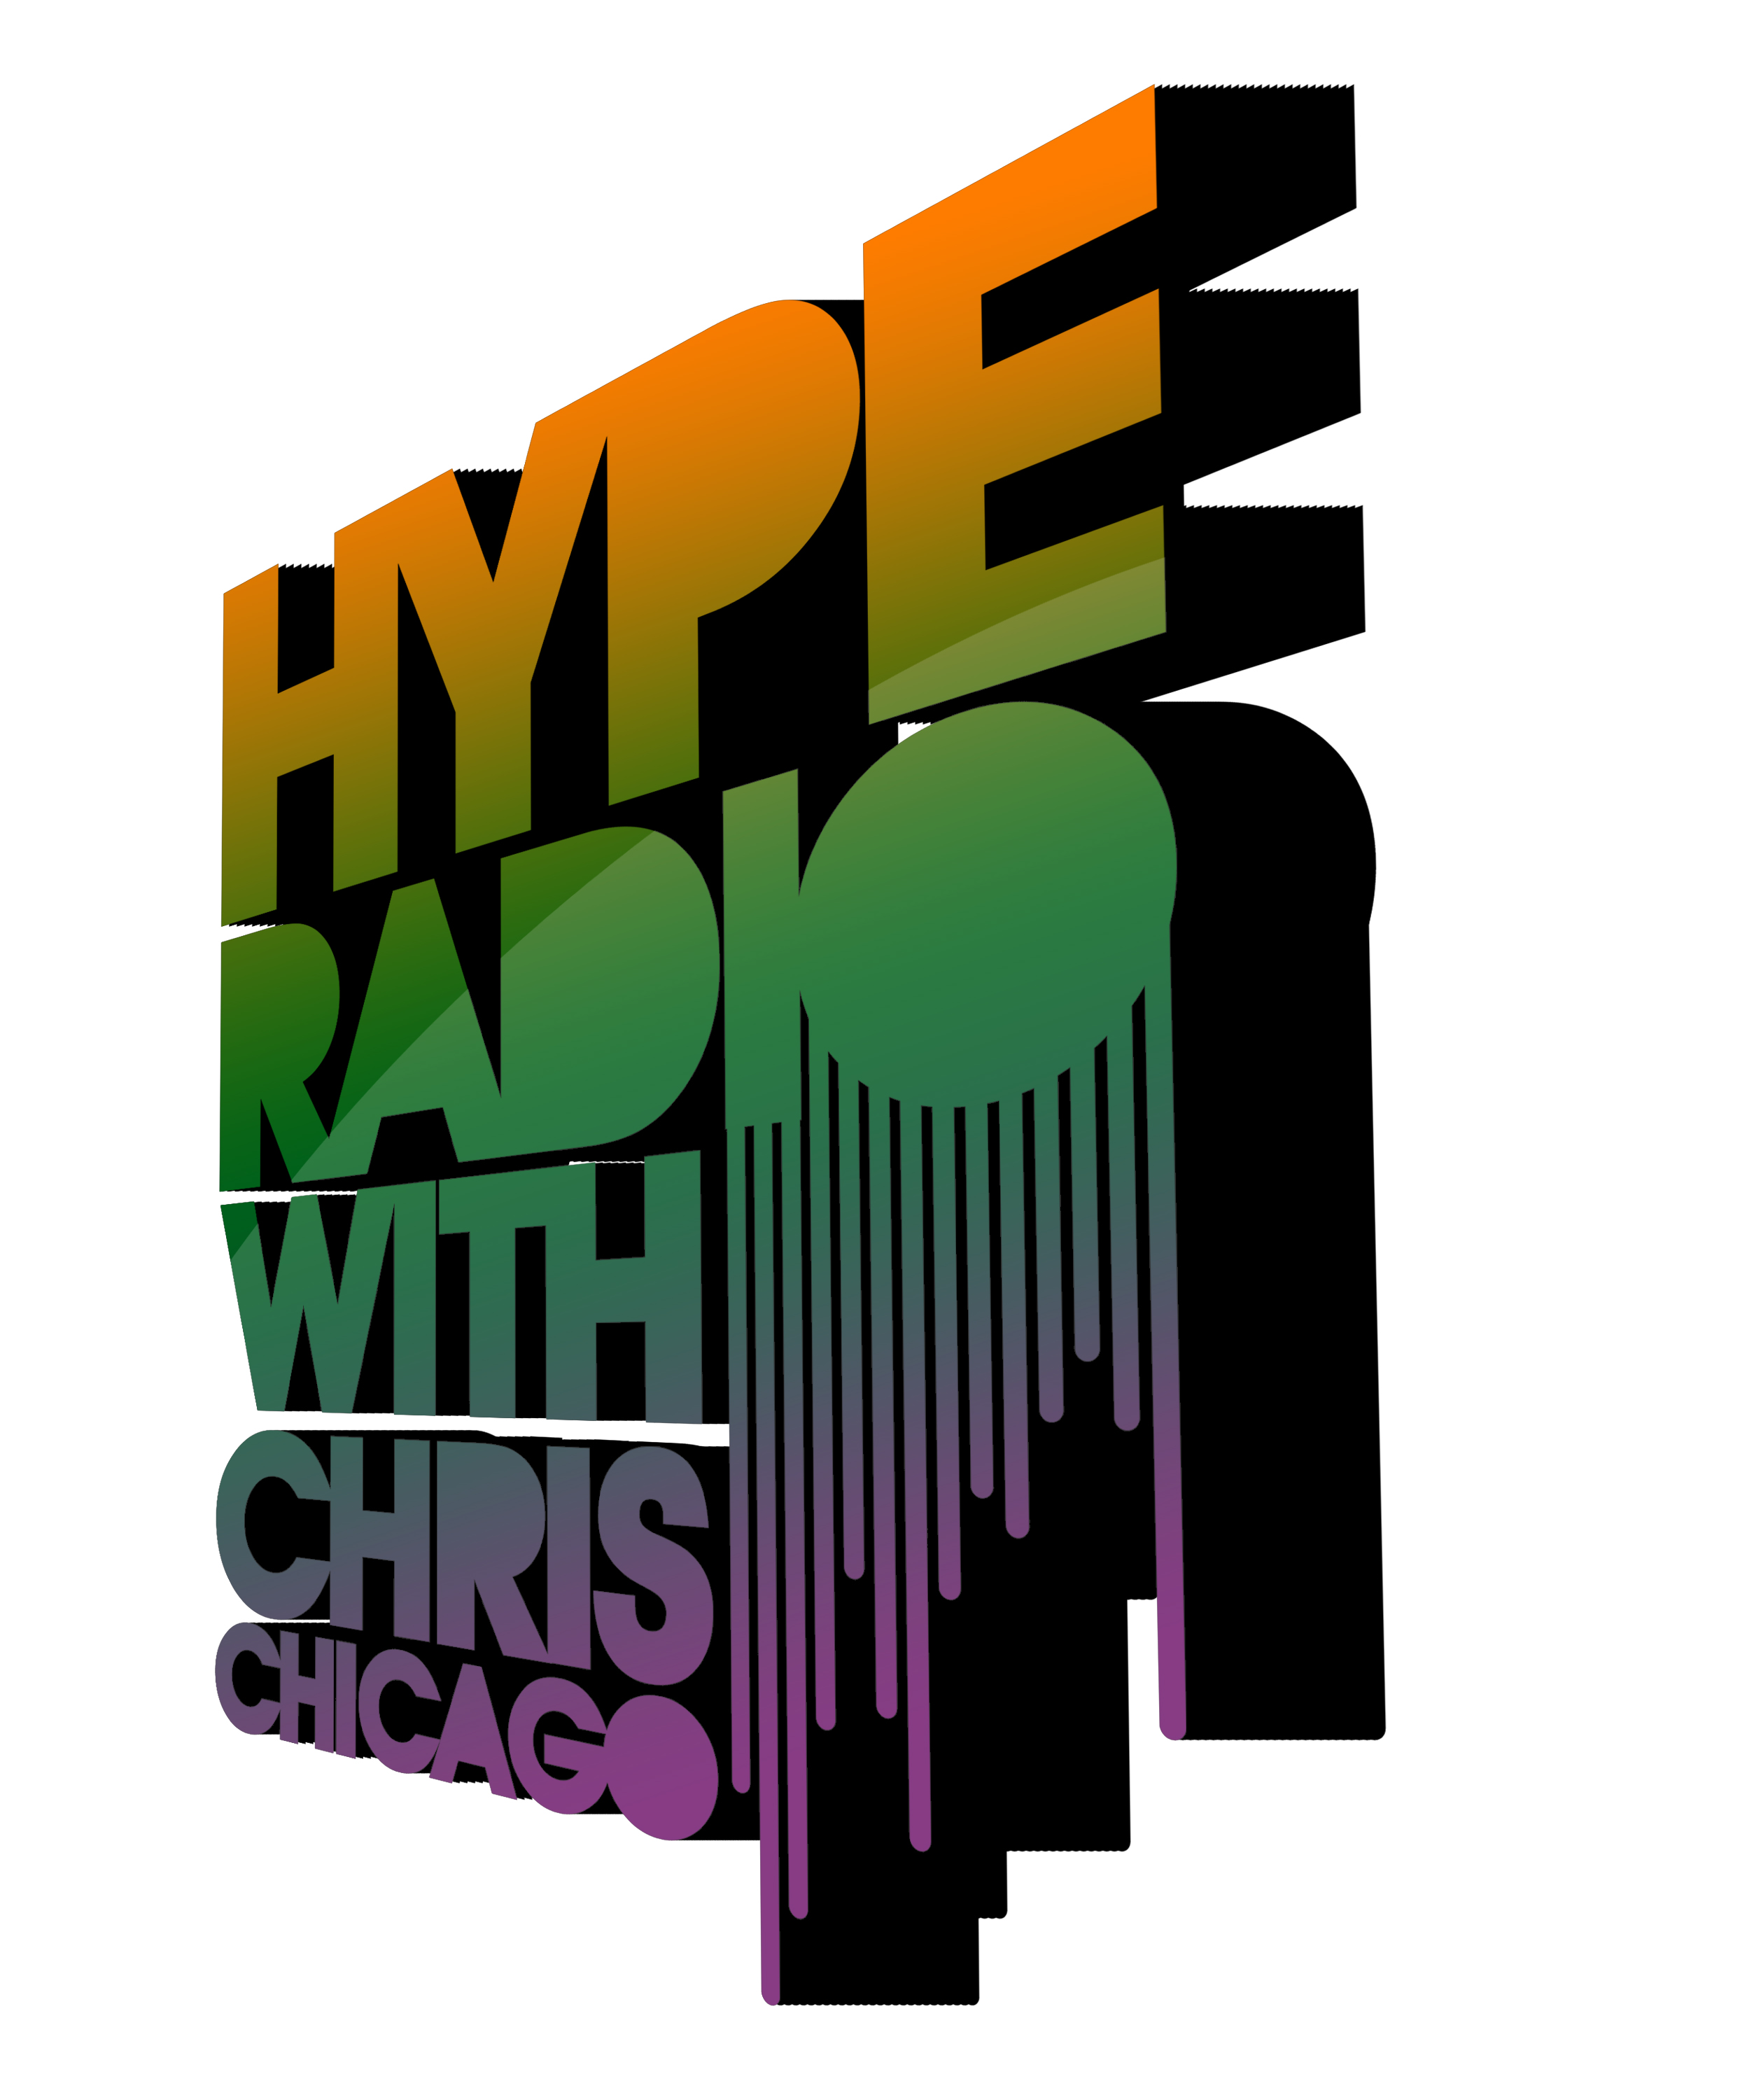 Episode 381 - Hype Radio With Chris Chicago